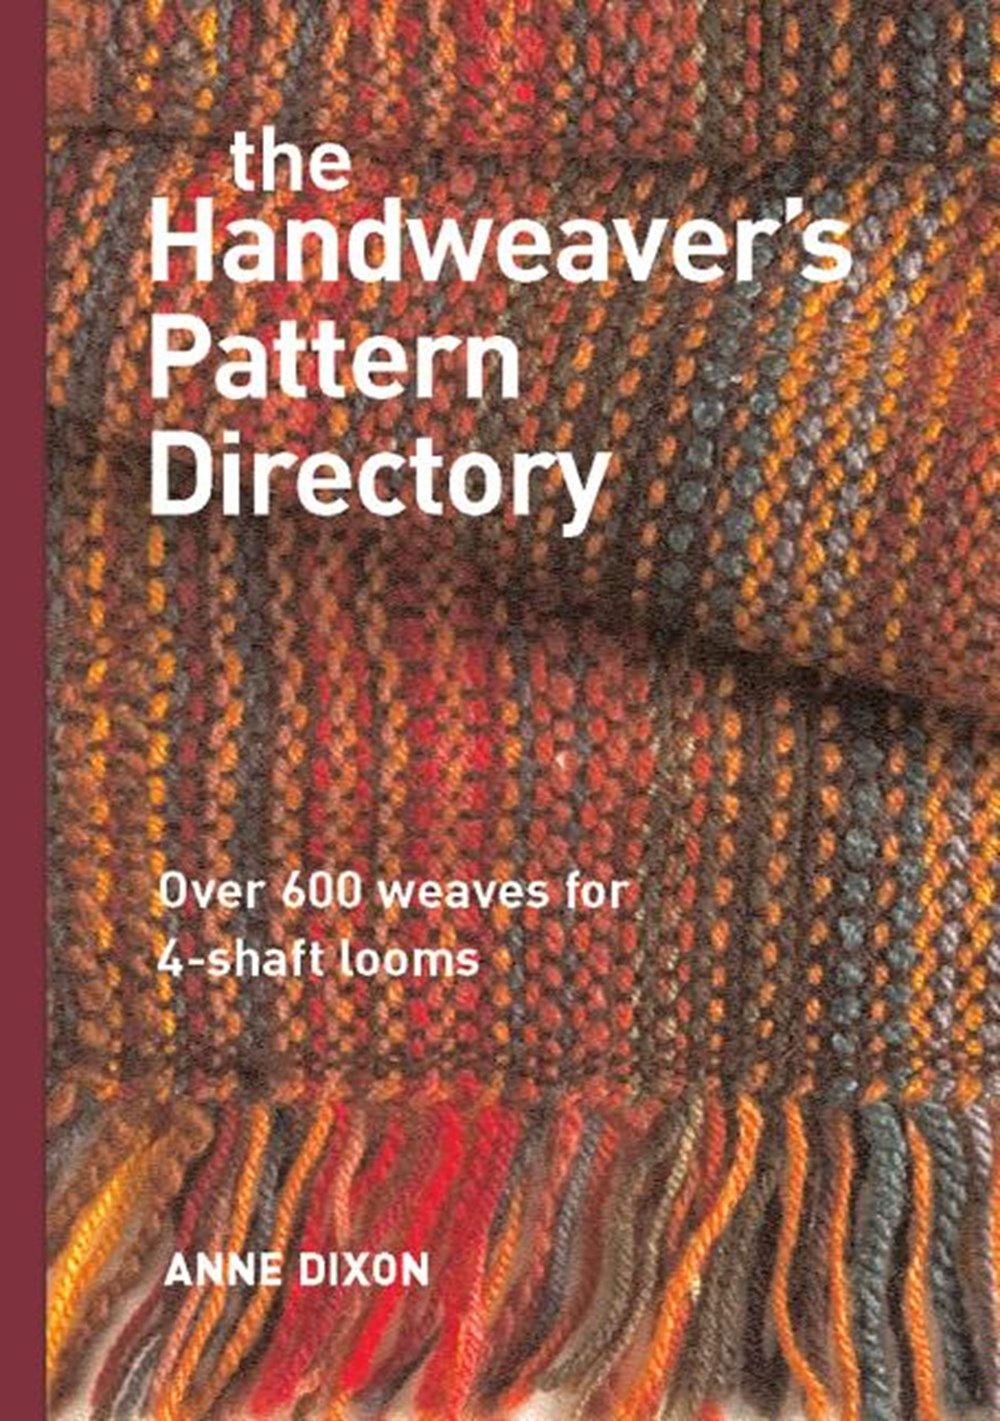 Handweaver's Pattern Directory Over 600 Weaves for Four-Shaft Looms